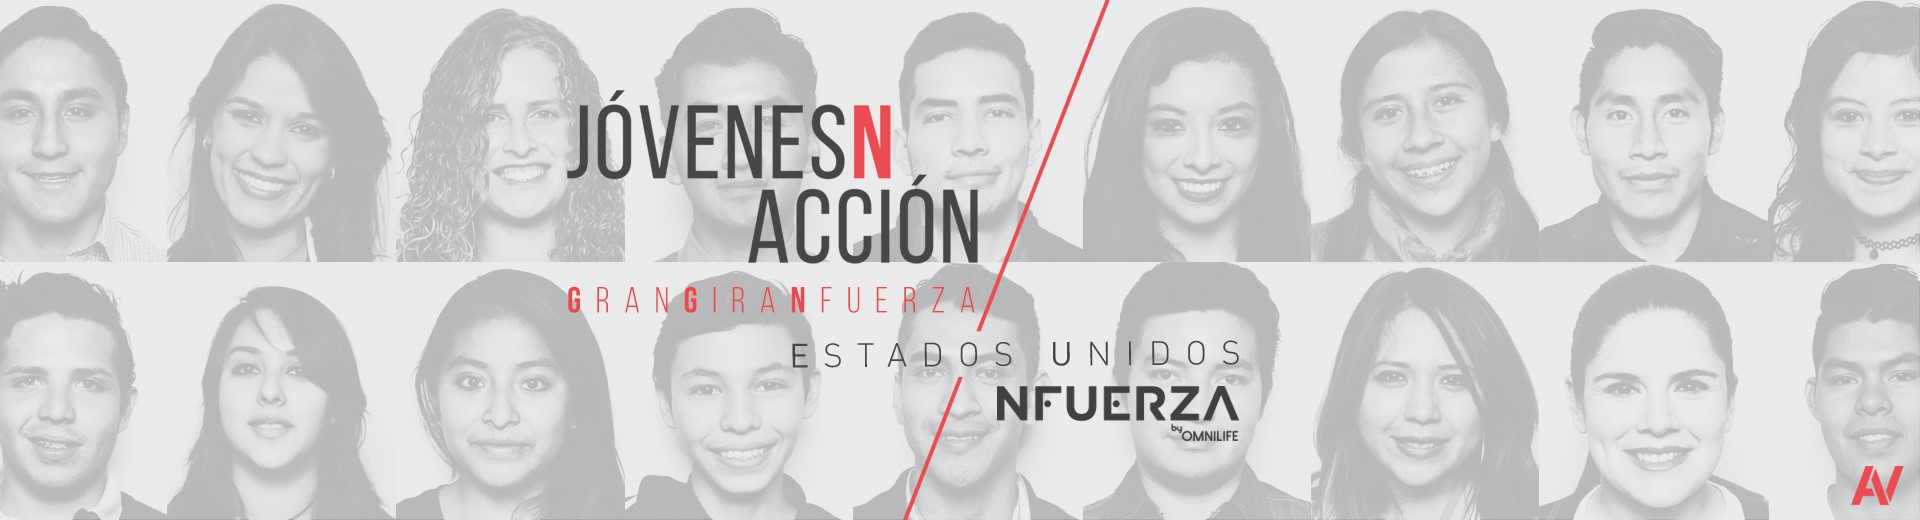 nfuerza